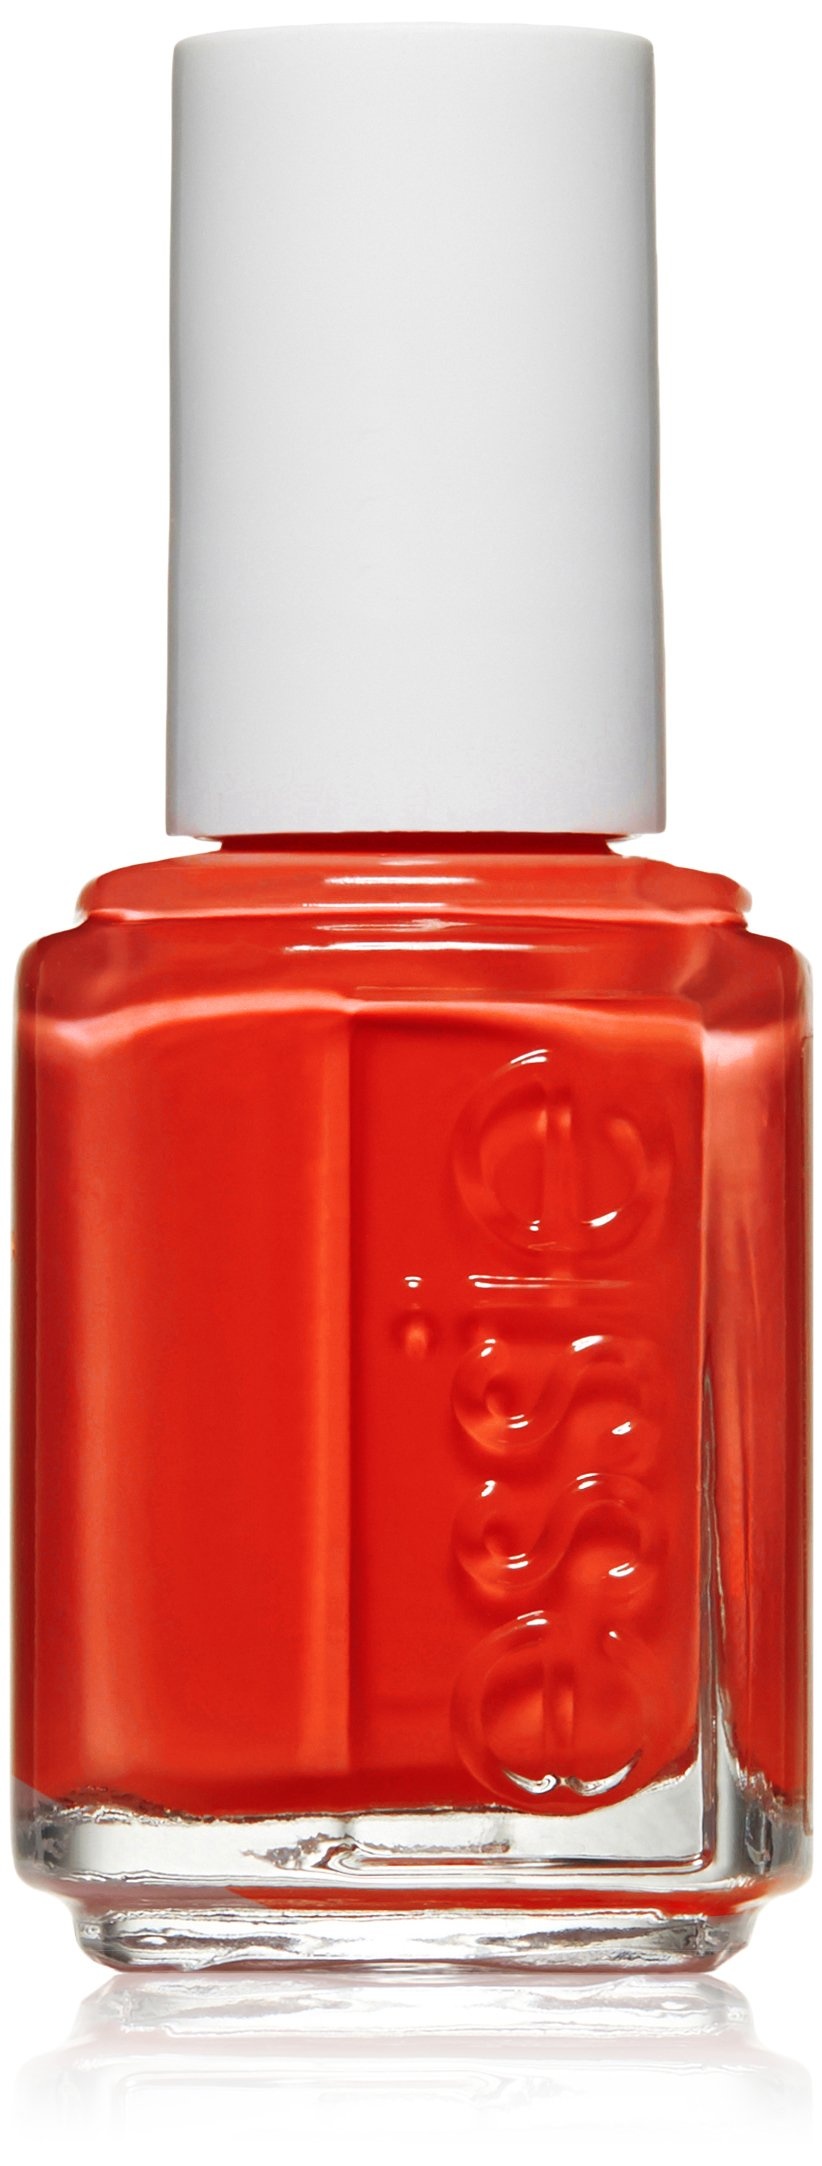 Essie Nail Color Geranium Buy Online In Israel Missing Category Value Products In Israel See Prices Reviews And Free Delivery Over 250 Desertcart